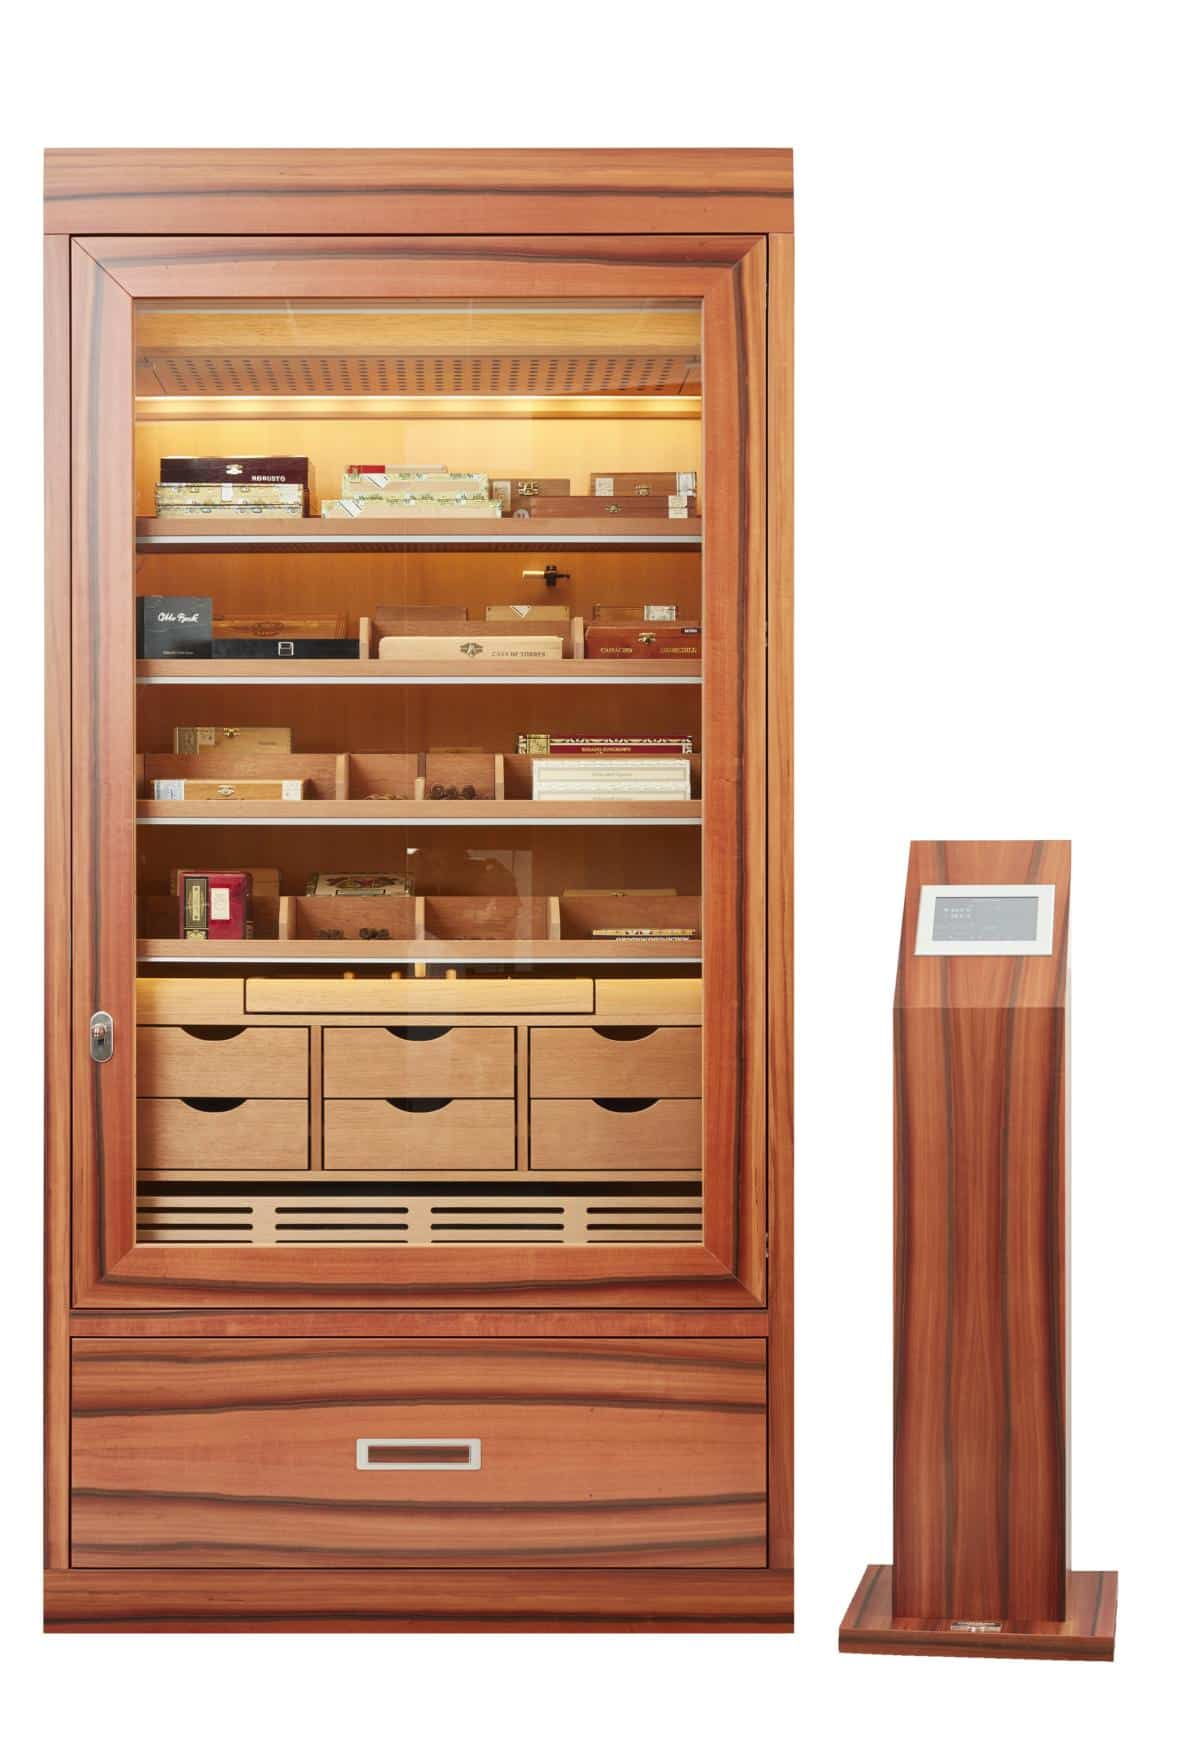 Gerber Number One Humidor in Tineo mit technischer Vollausstattung